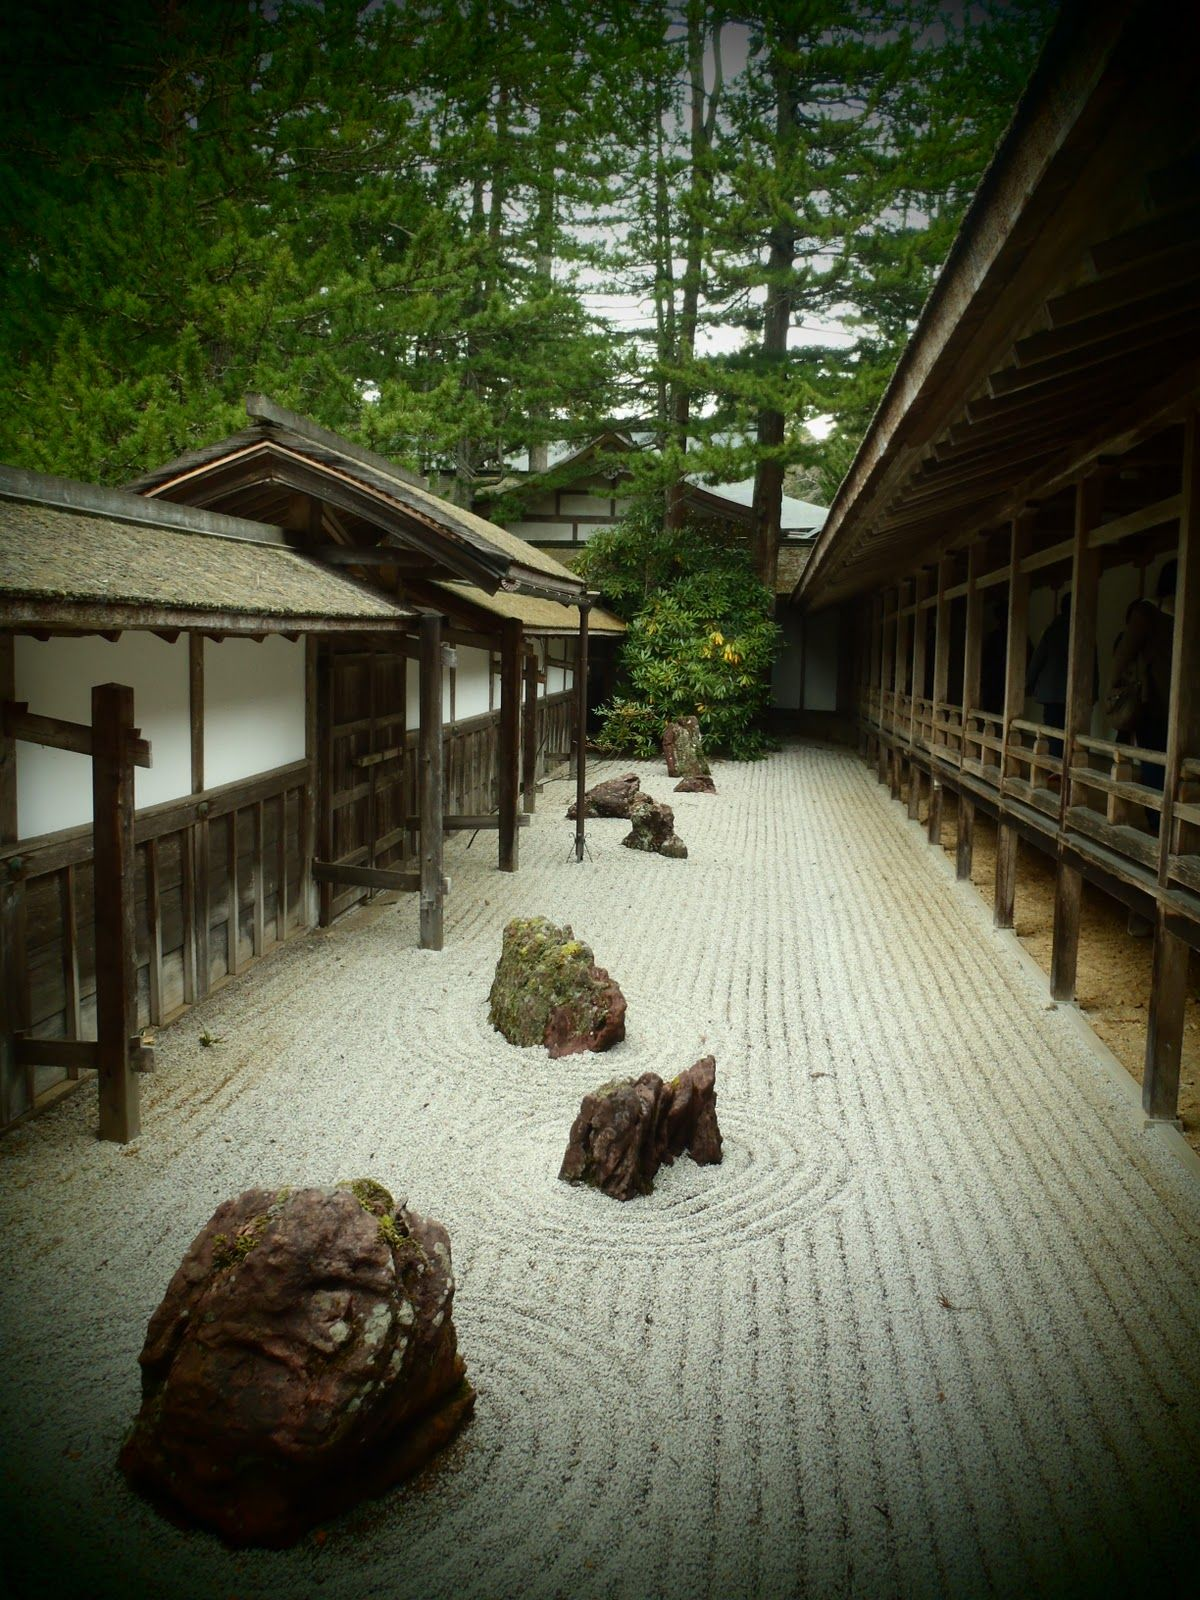 Buddhist Ceremony Traditional Japanese Garden: Buddhist Temple Courtyard, Mt. Koya, Japan.